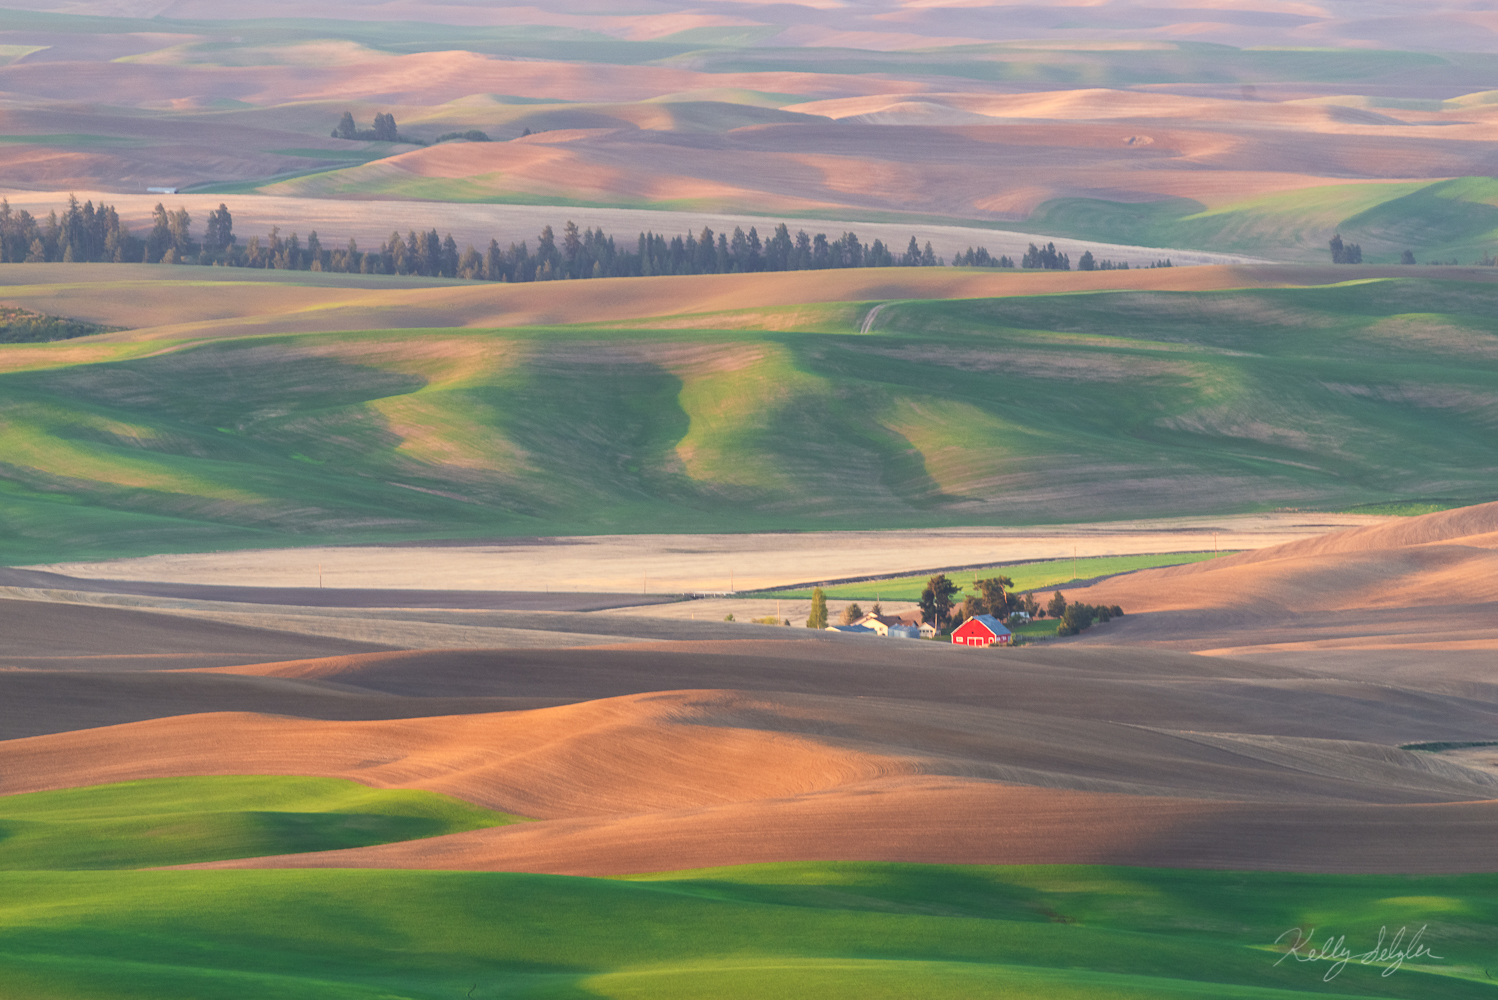 A spectacular morning overlooking The Palouse. This was my first time seeing this unique landscape and it was absolutely breathtaking...